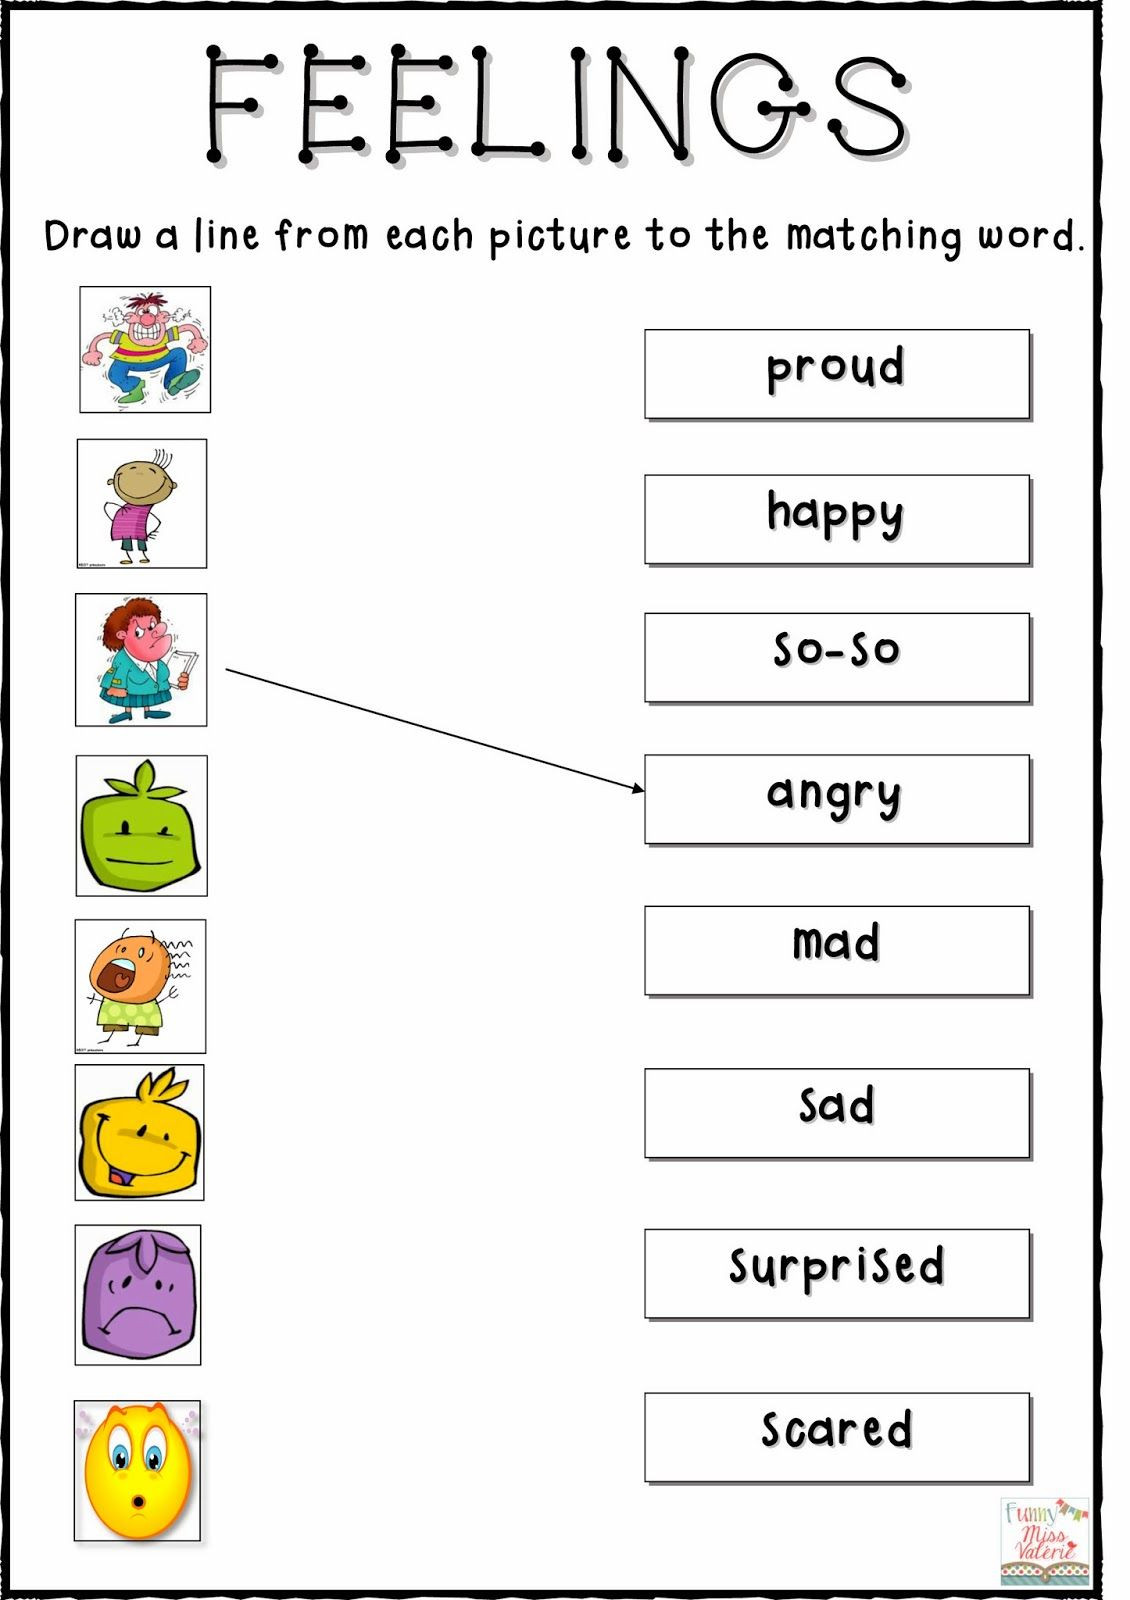 Free Printable Feelings Worksheets My Feelings Worksheets